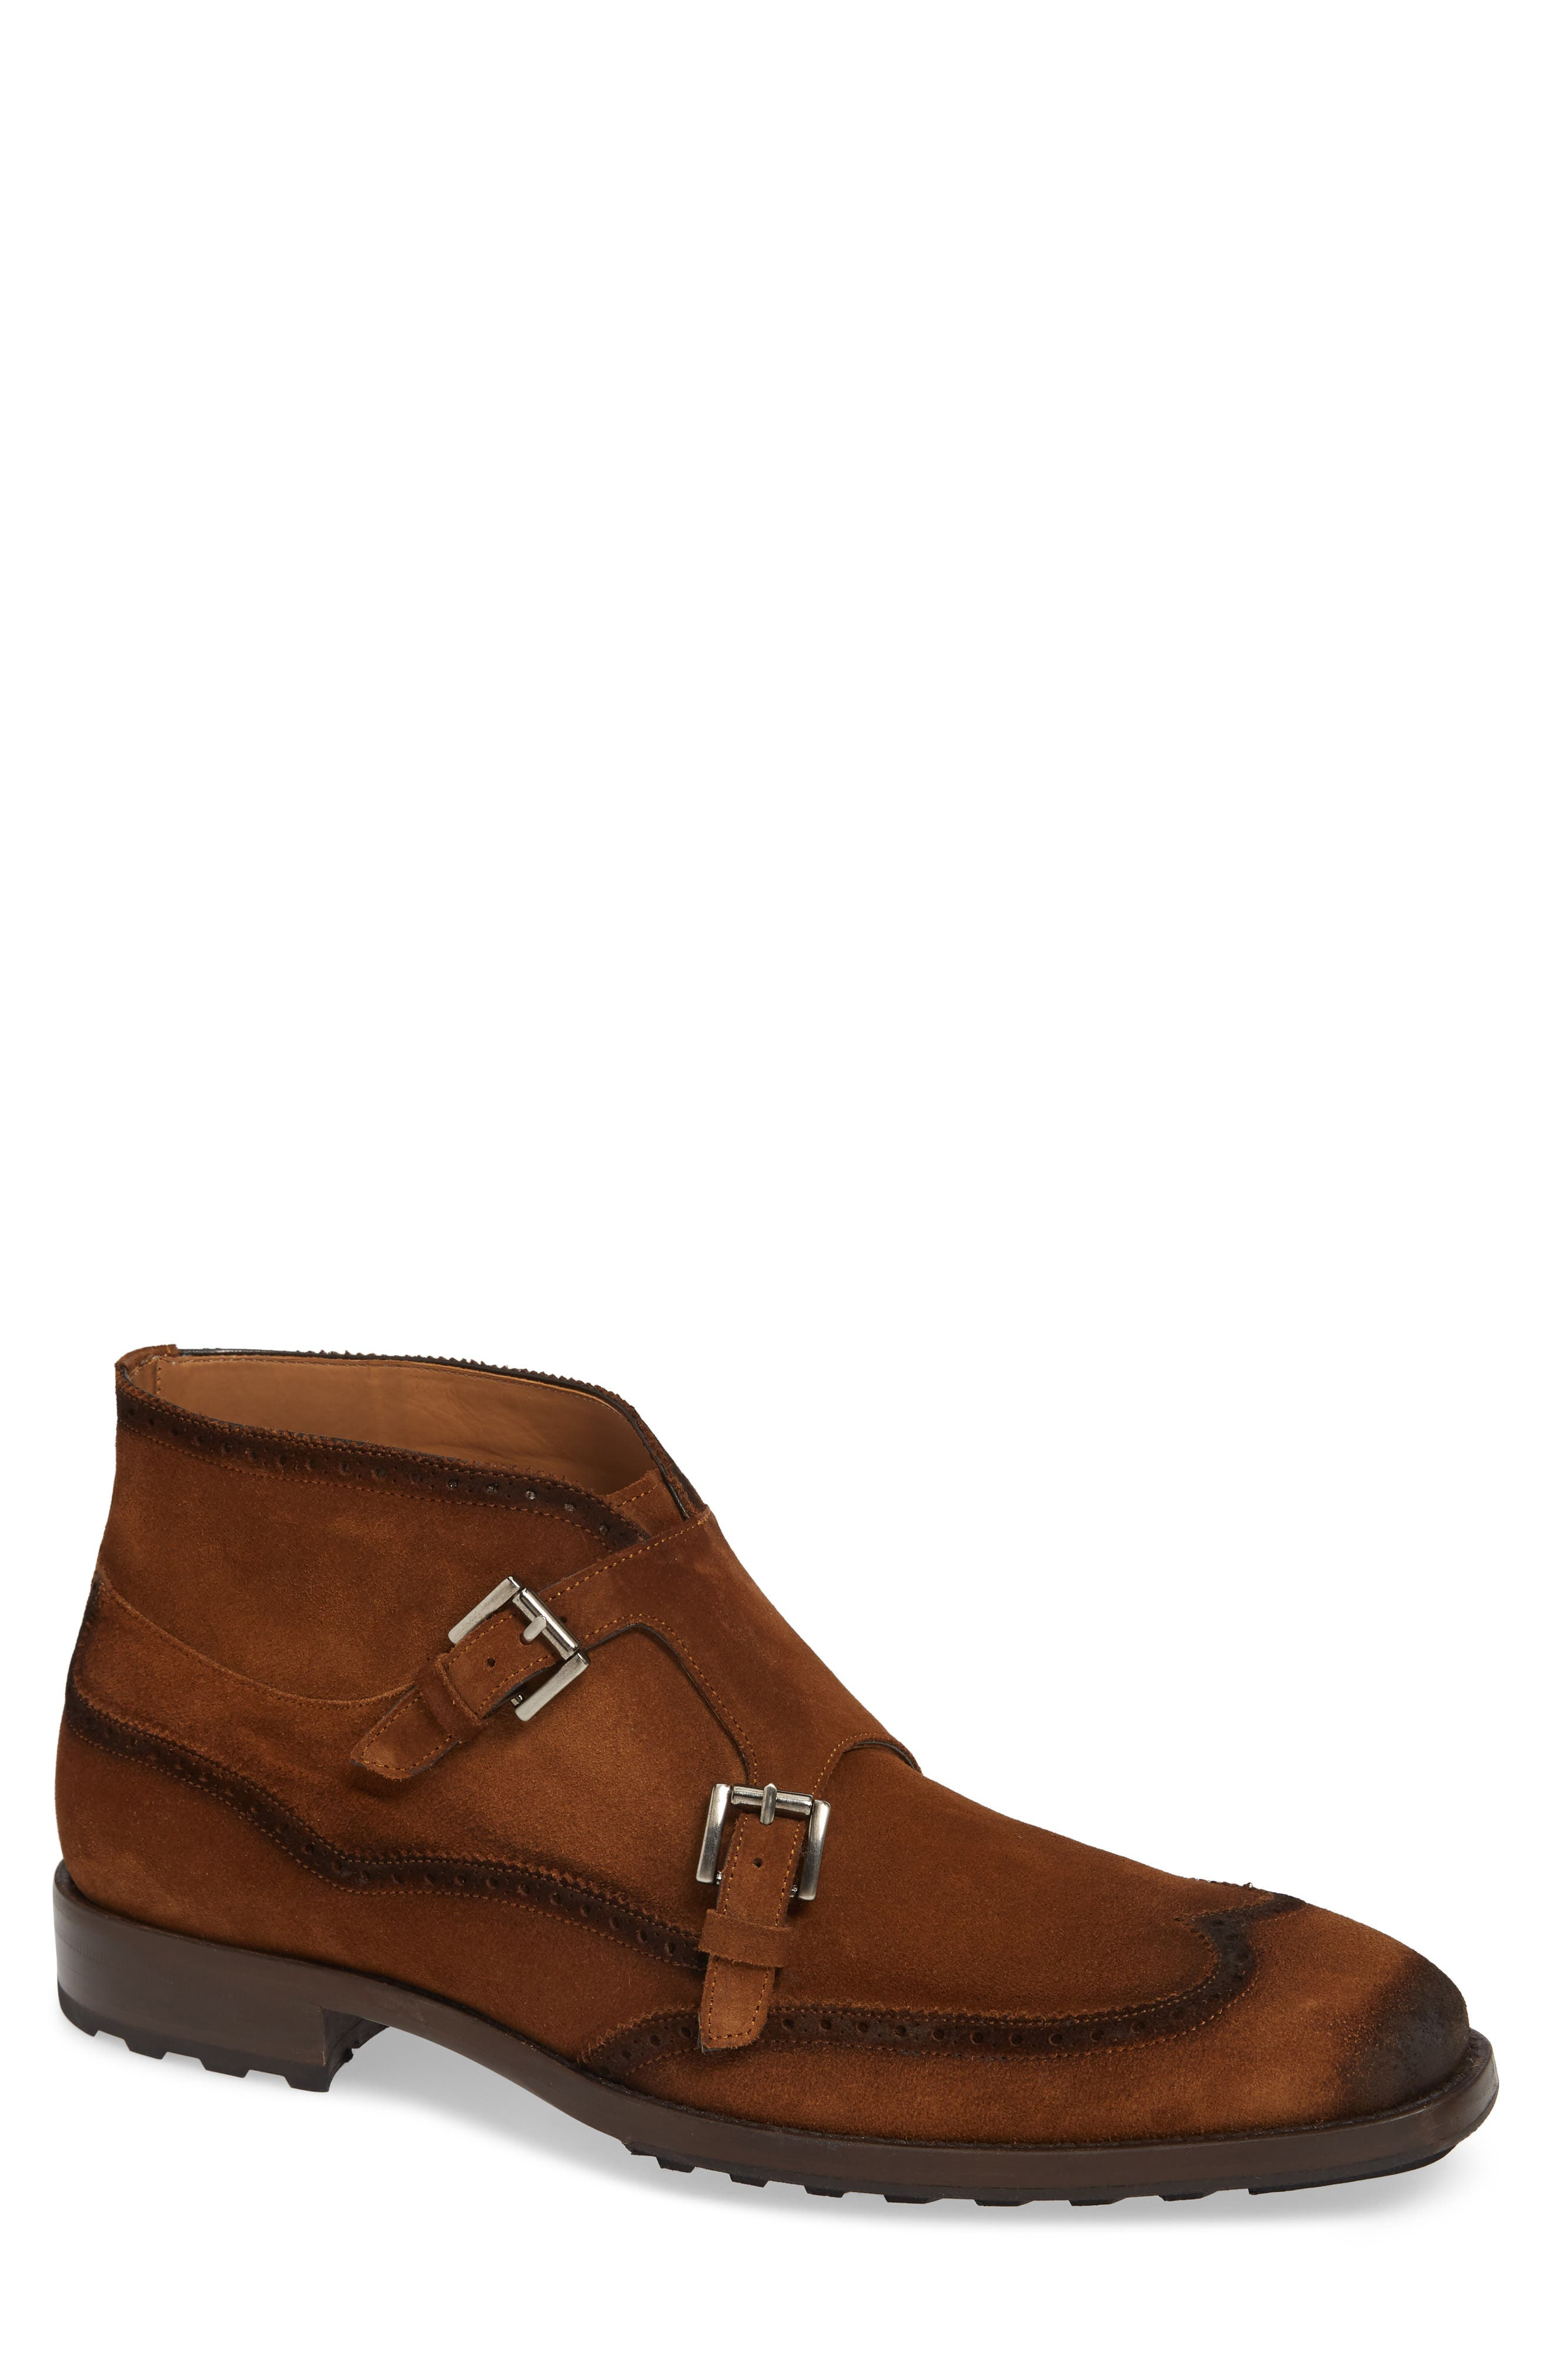 Mezlan Munoz Double Monk Strap Boot, Brown